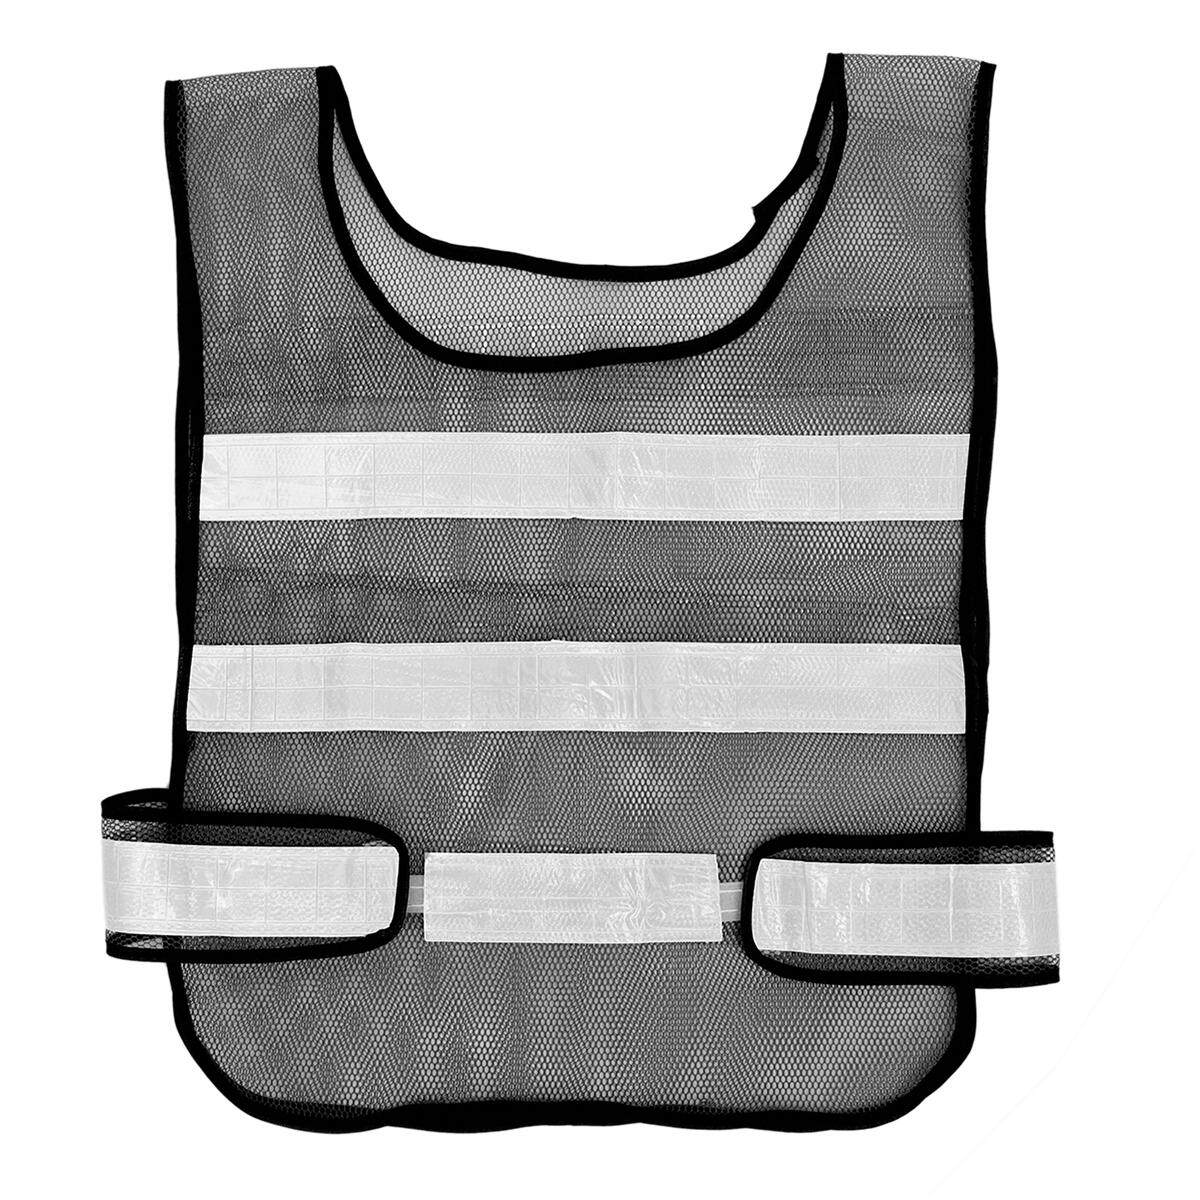 Traffic Security Vest Visibility Mesh Reflective Stripes Waistcoat[ Black]